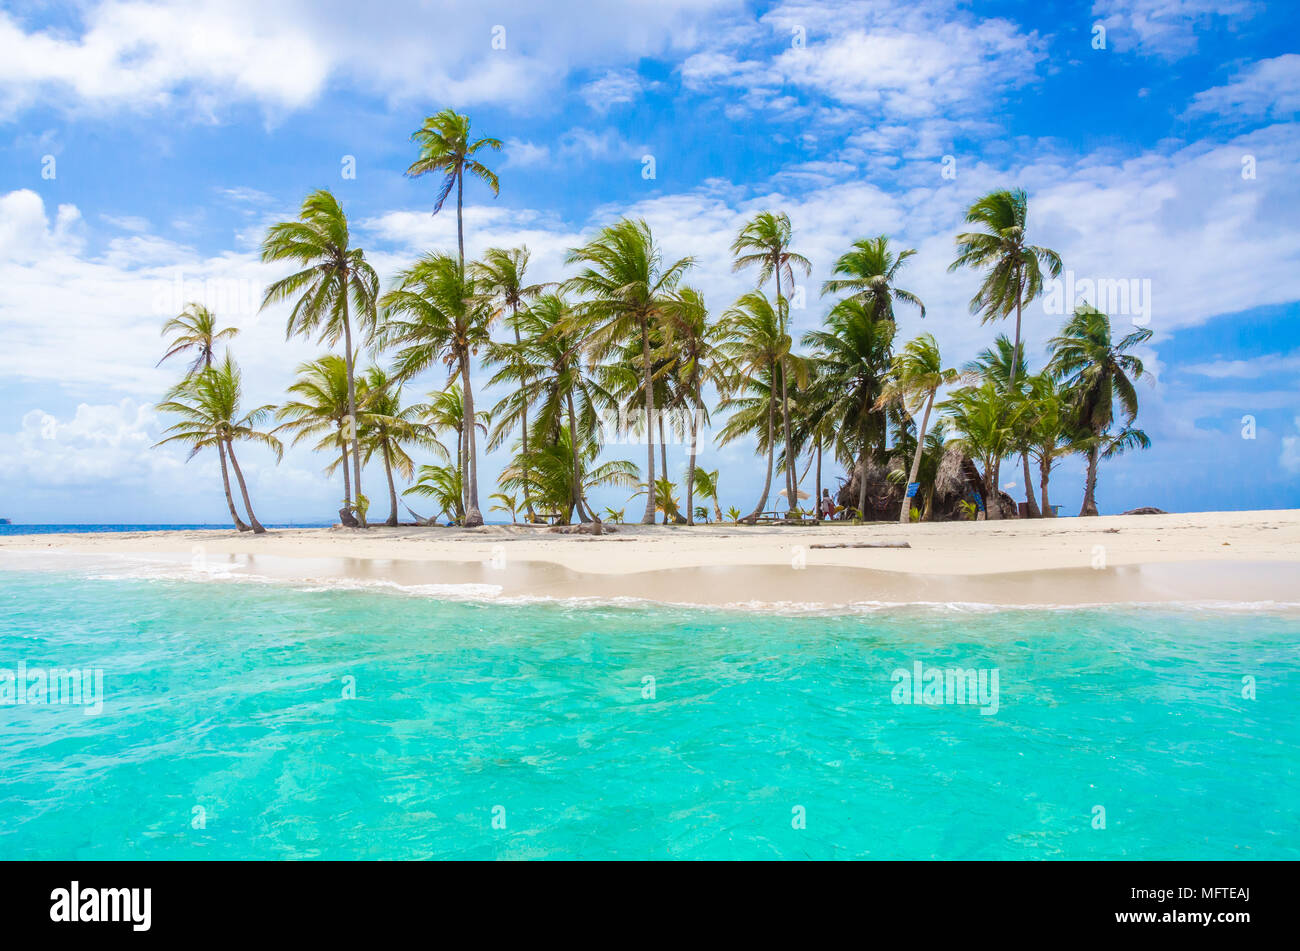 Beautiful Lonely Beach In Caribbean San Blas Island Kuna Yala Panama Turquoise Tropical Sea Paradise Travel Destination Central America Stock Photo Alamy